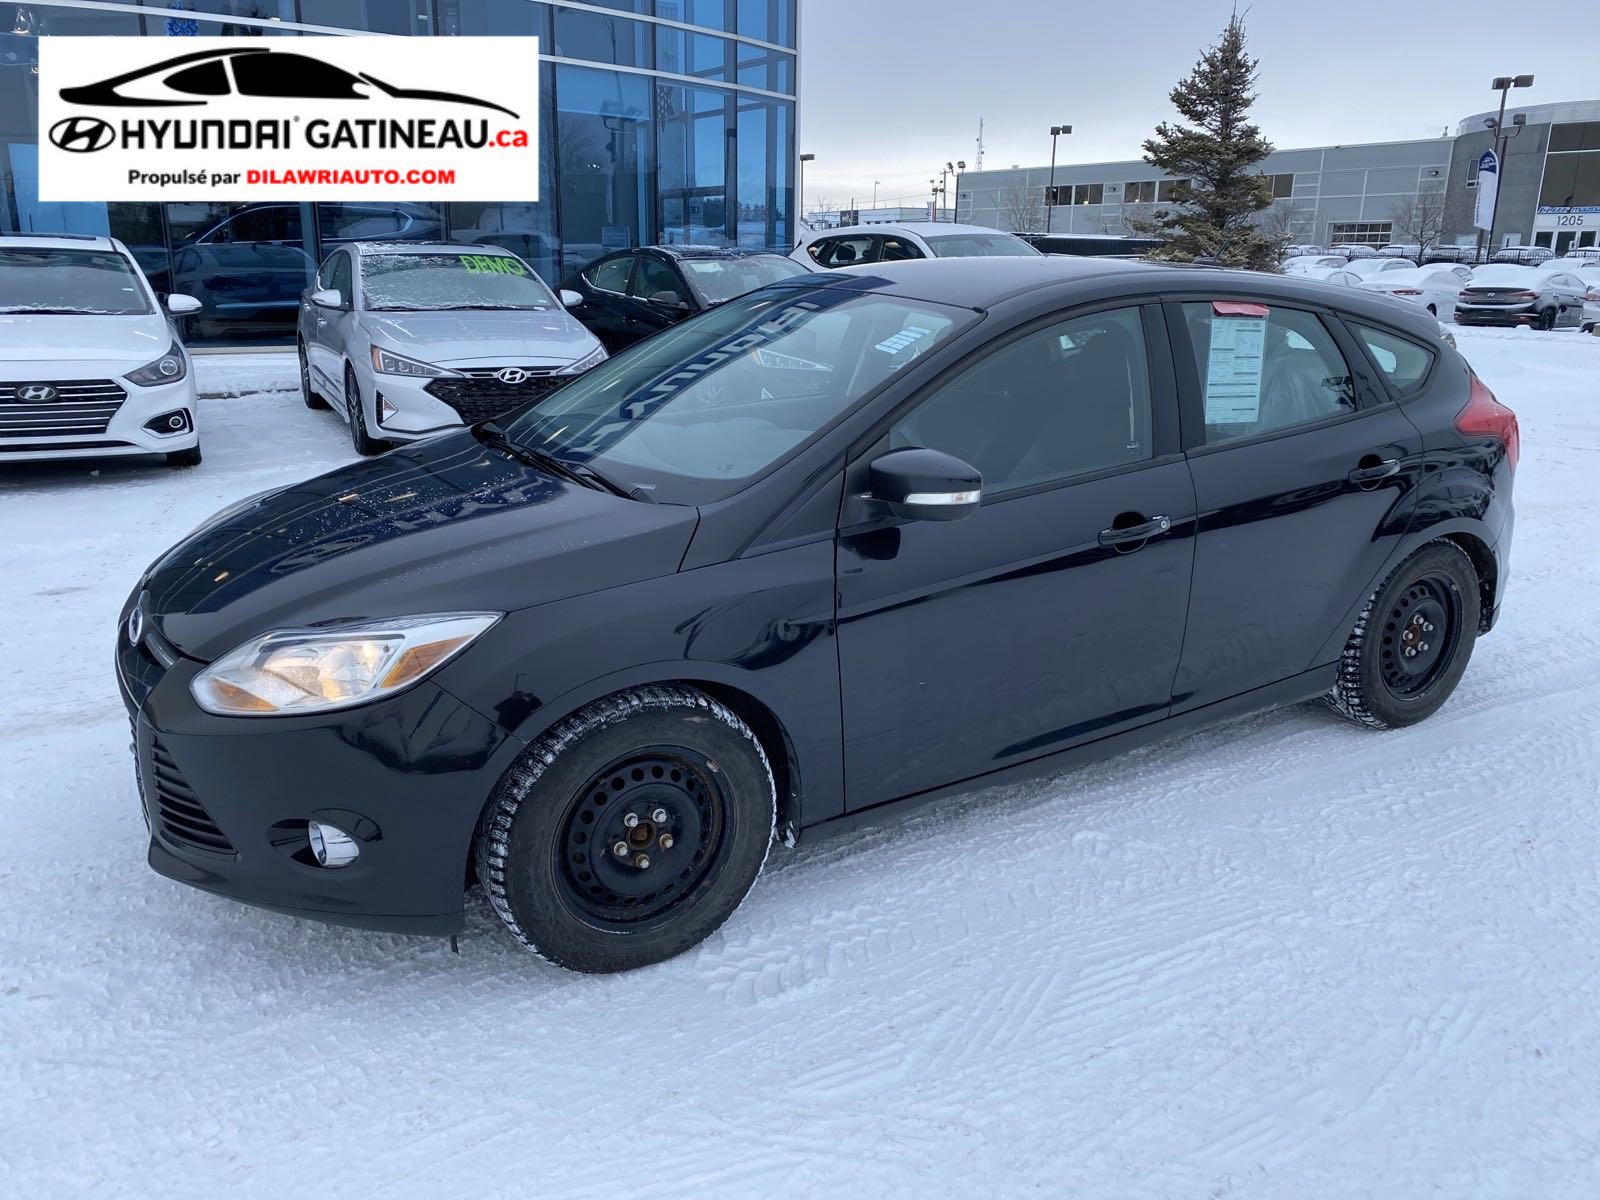 Ford Focus Hatchback - 2013